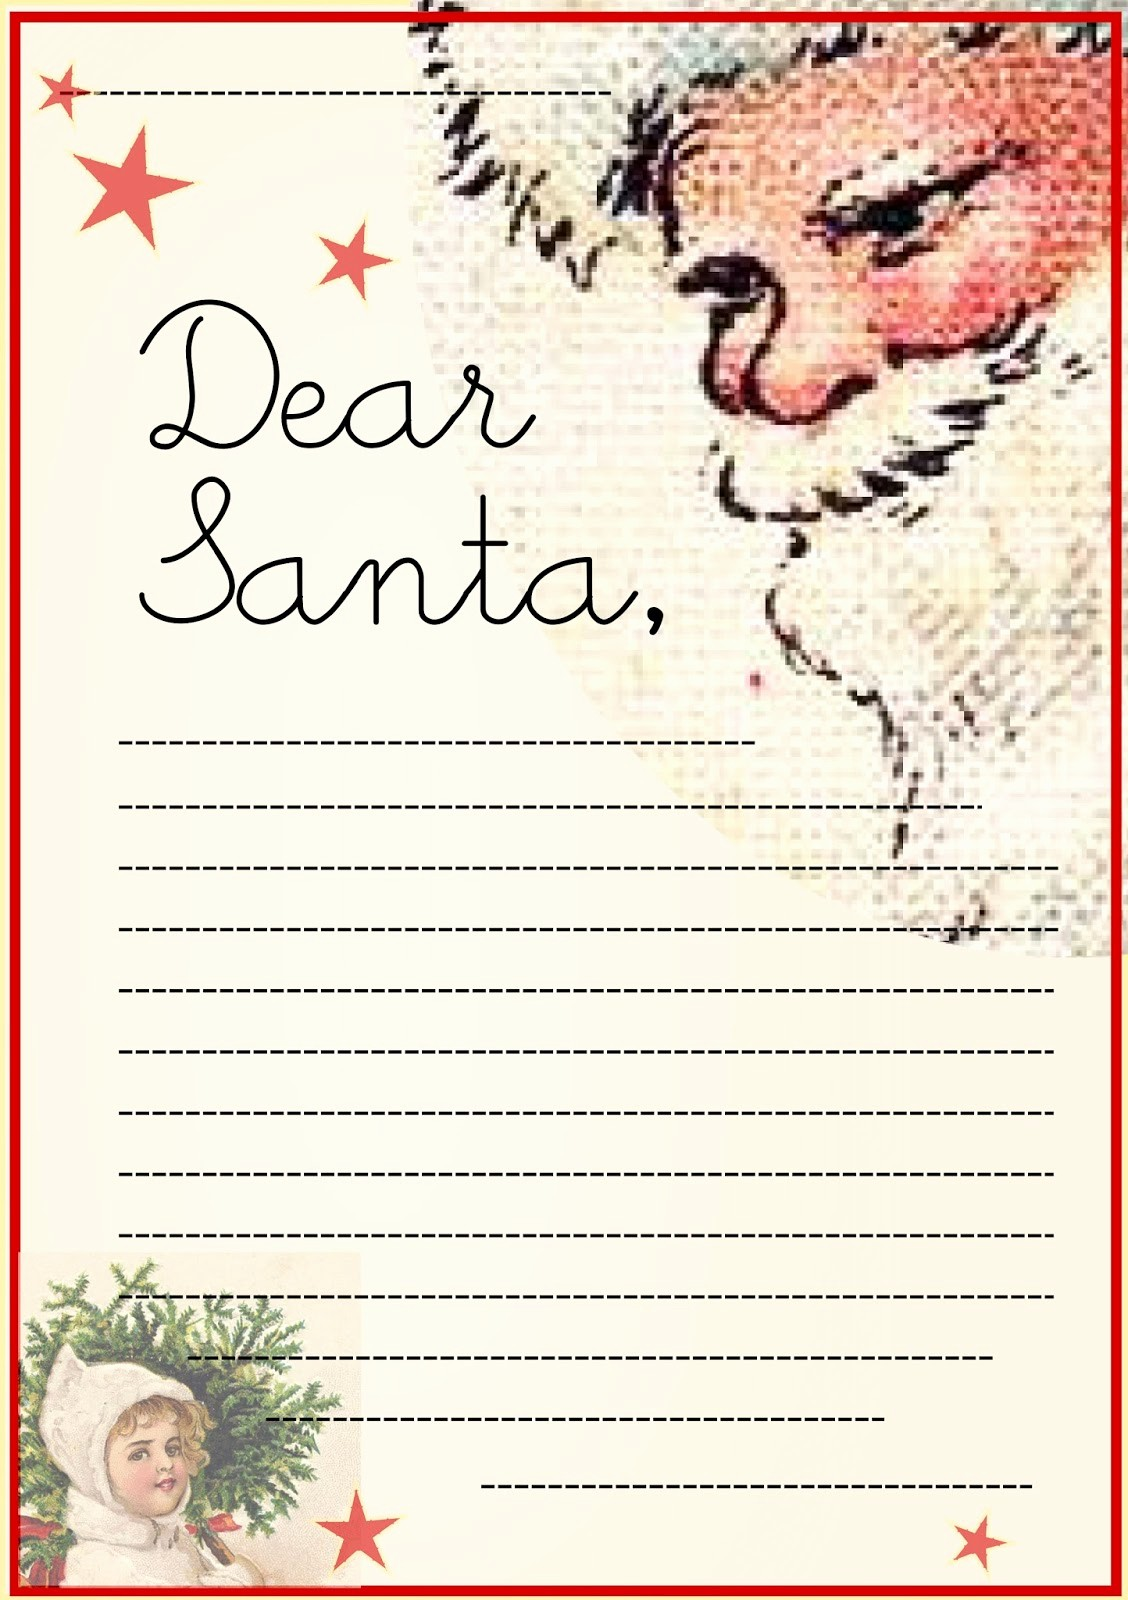 Letter to Santa Claus Templates Luxury Free Printable Letter to Santa Claus Template for Children